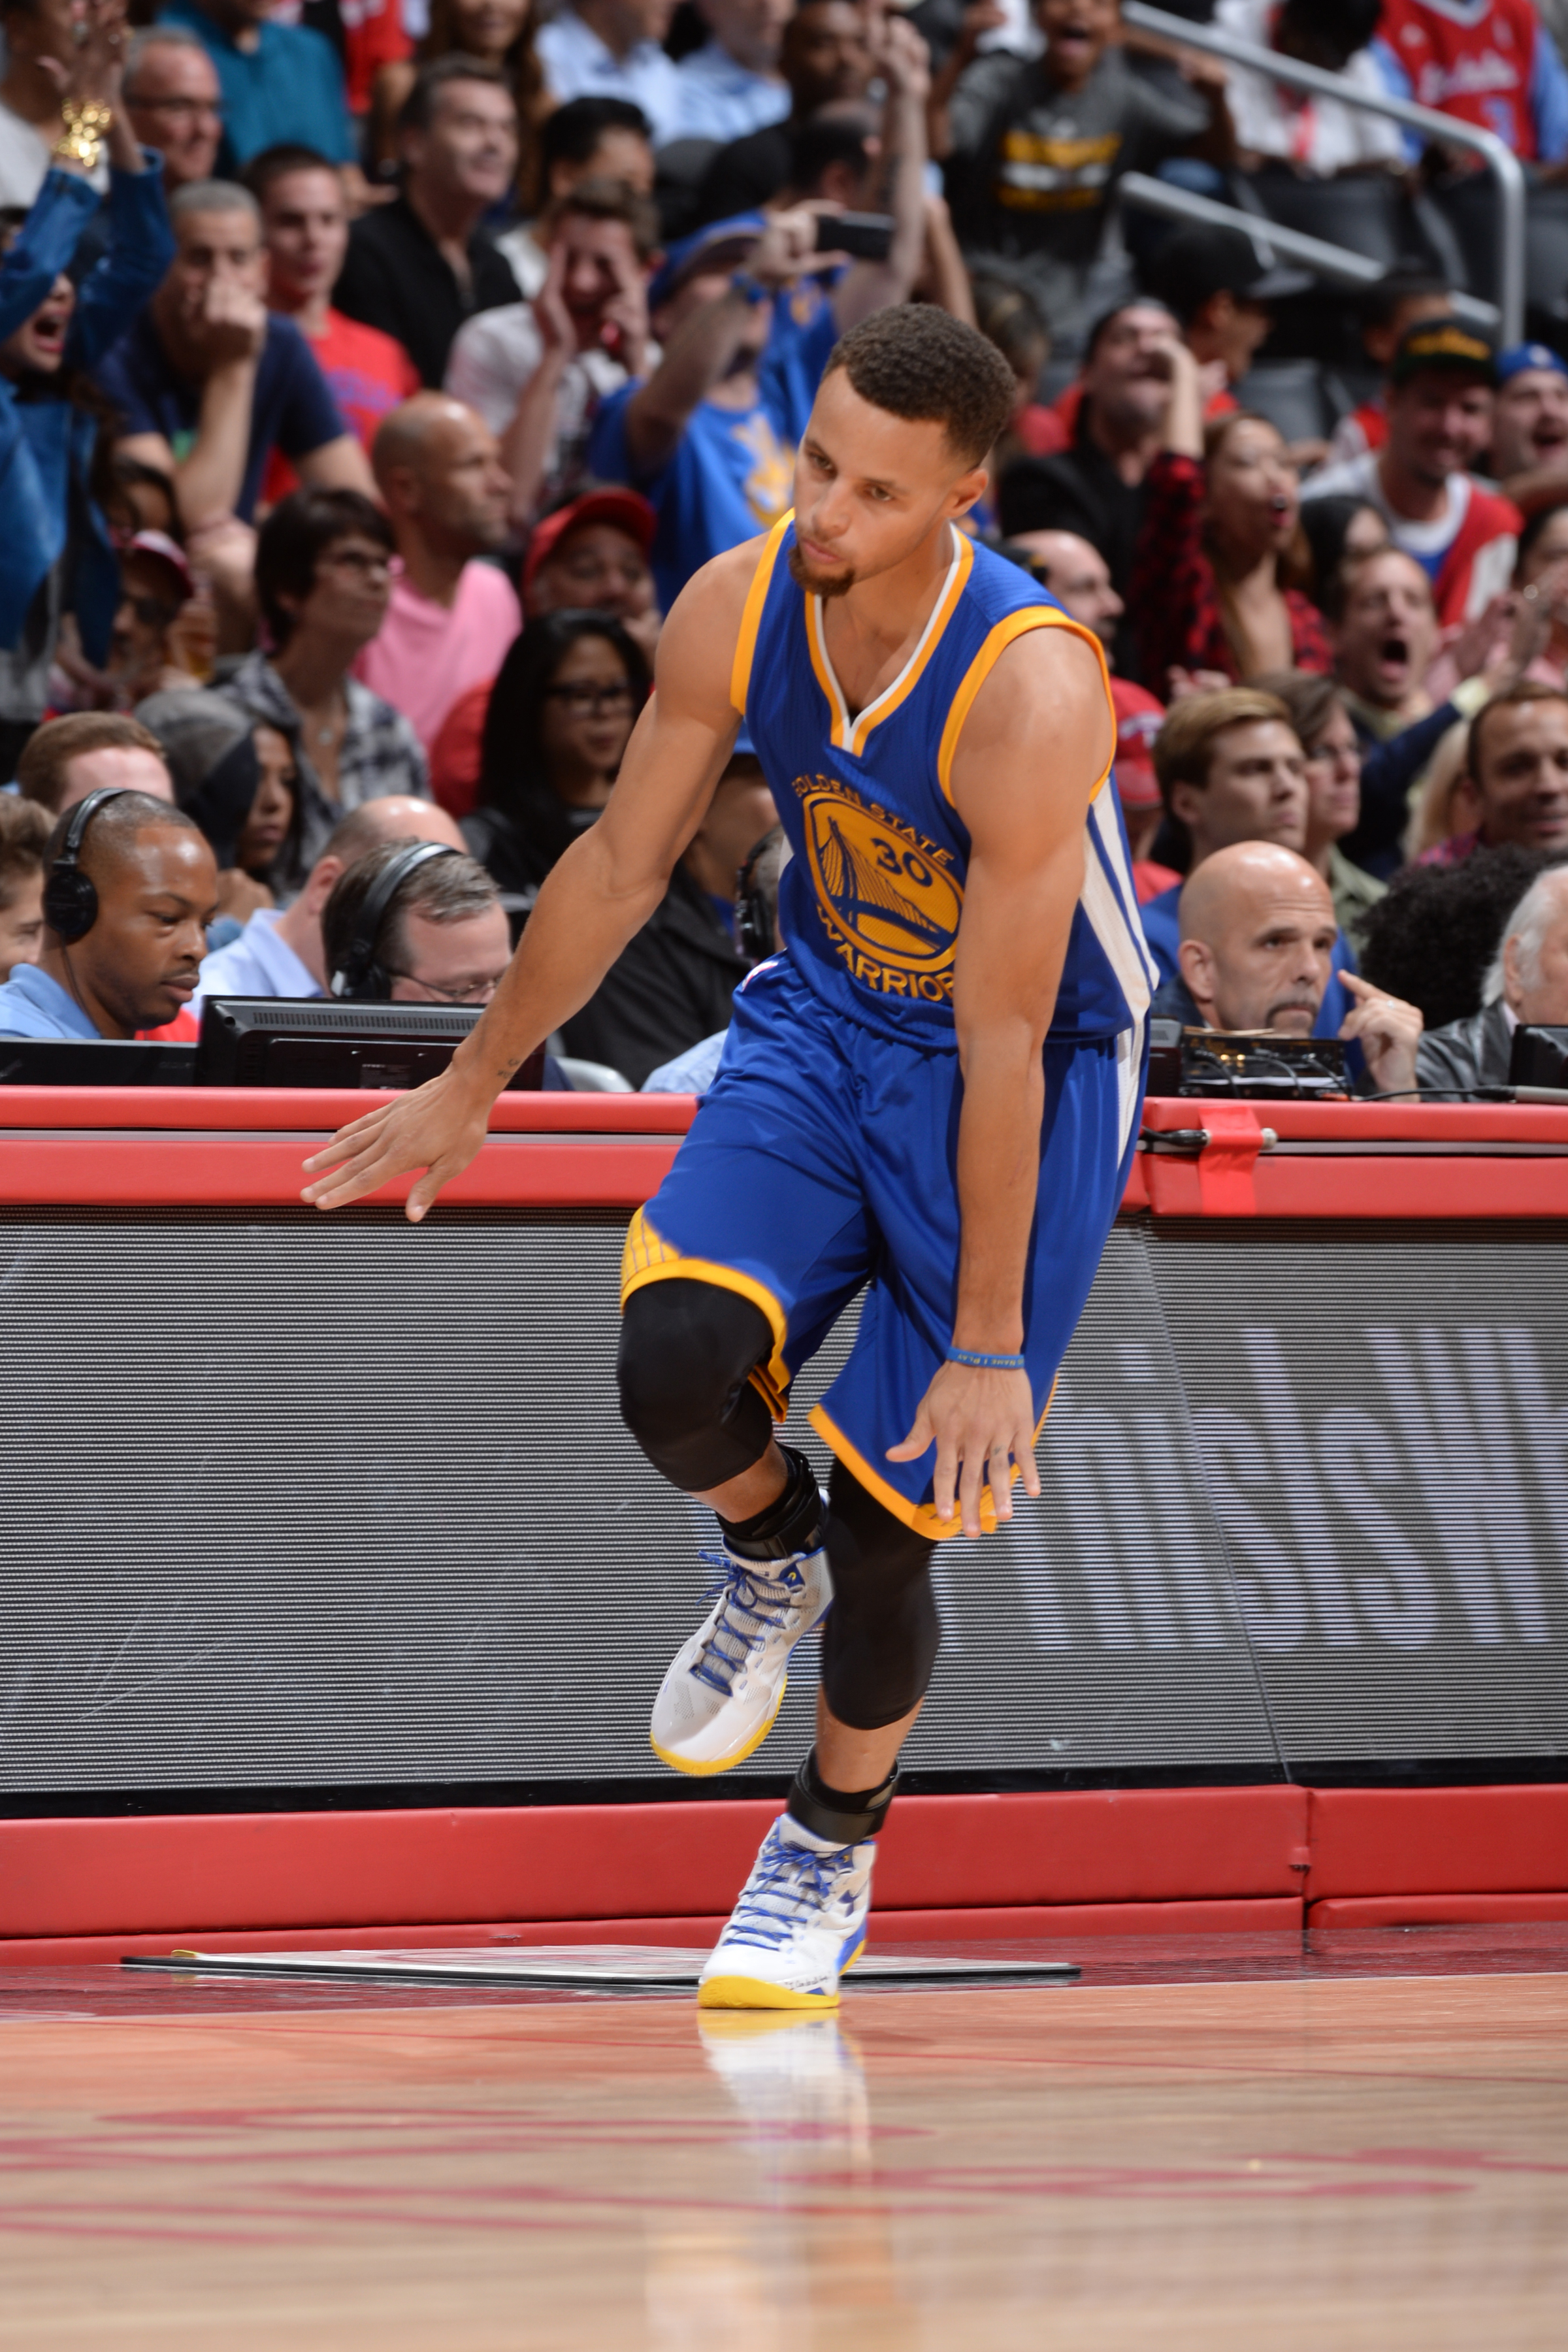 LOS ANGELES, CA - NOVEMBER 19:  Stephen Curry #30 of the Golden State Warriors reacts during the game against the Los Angeles Clippers on November 19, 2015 at STAPLES Center in Los Angeles, California. (Photo by Andrew D. Bernstein/NBAE via Getty Images)